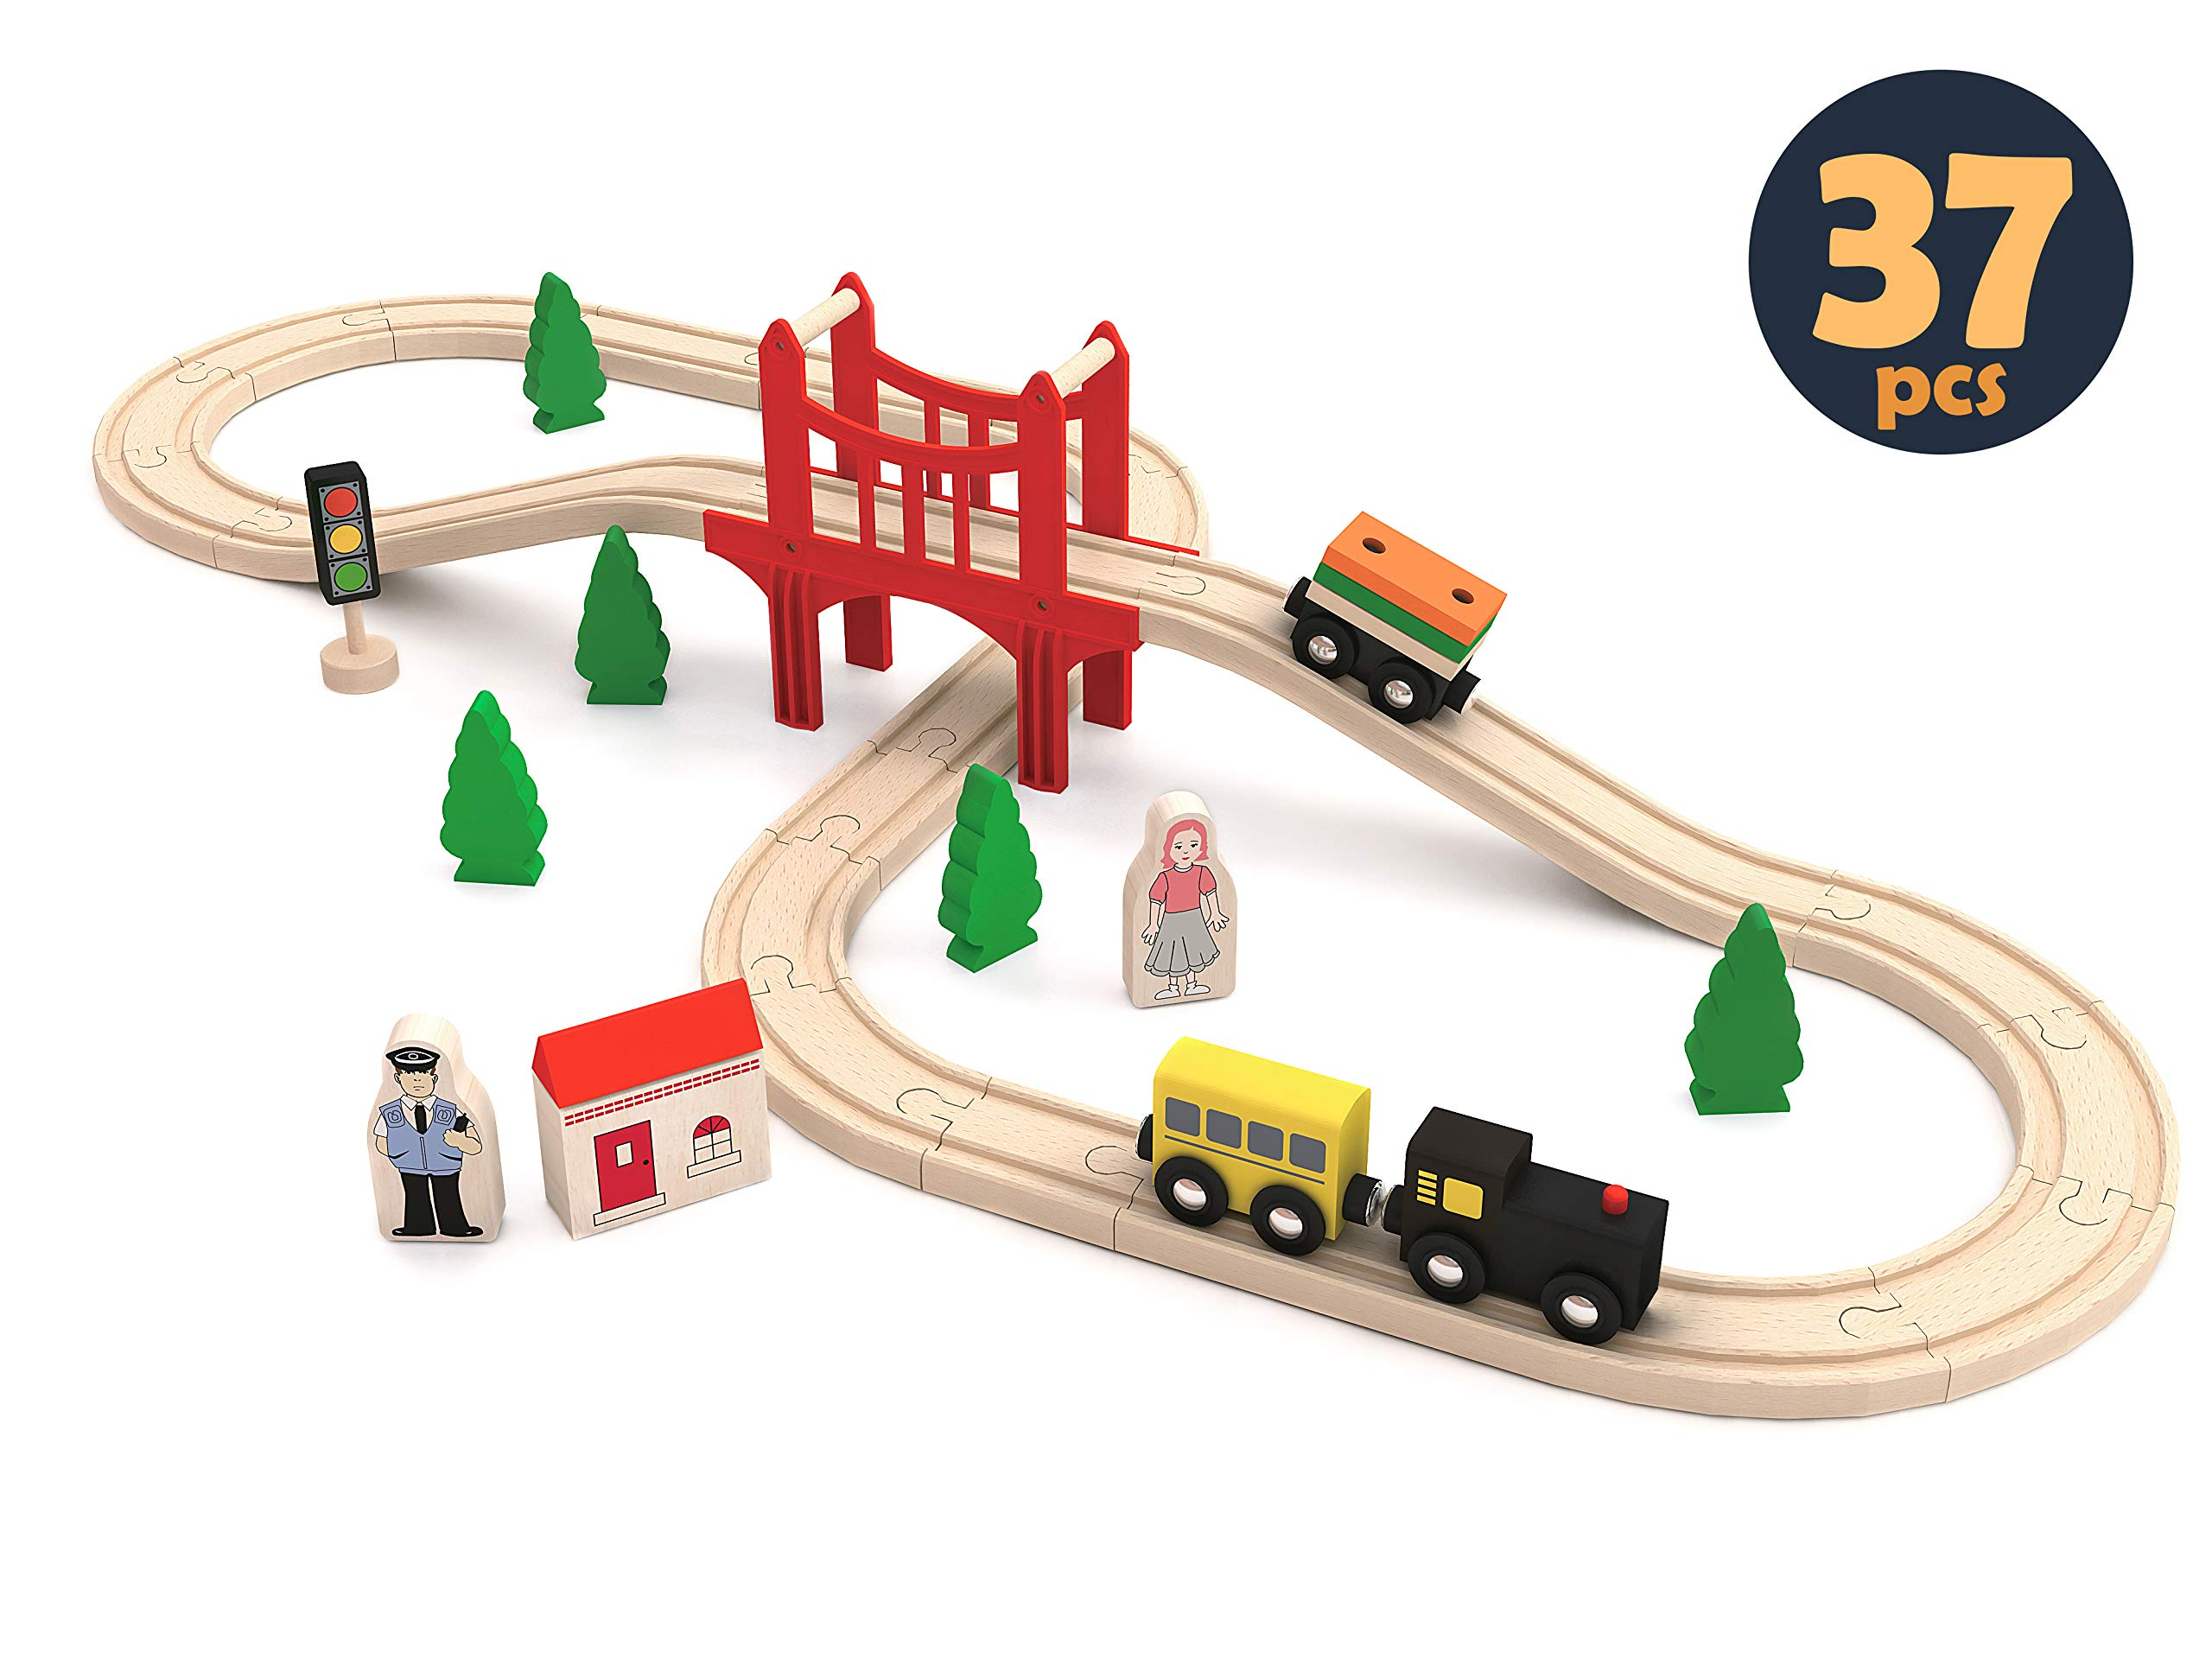 Wooden Train Set Toddler, Toy Tracks, Engine, Passenger Car (37-Piece Play Kit) Kids Friendly Building & Construction | Expandable, Changeable | Fun Girls & Boys